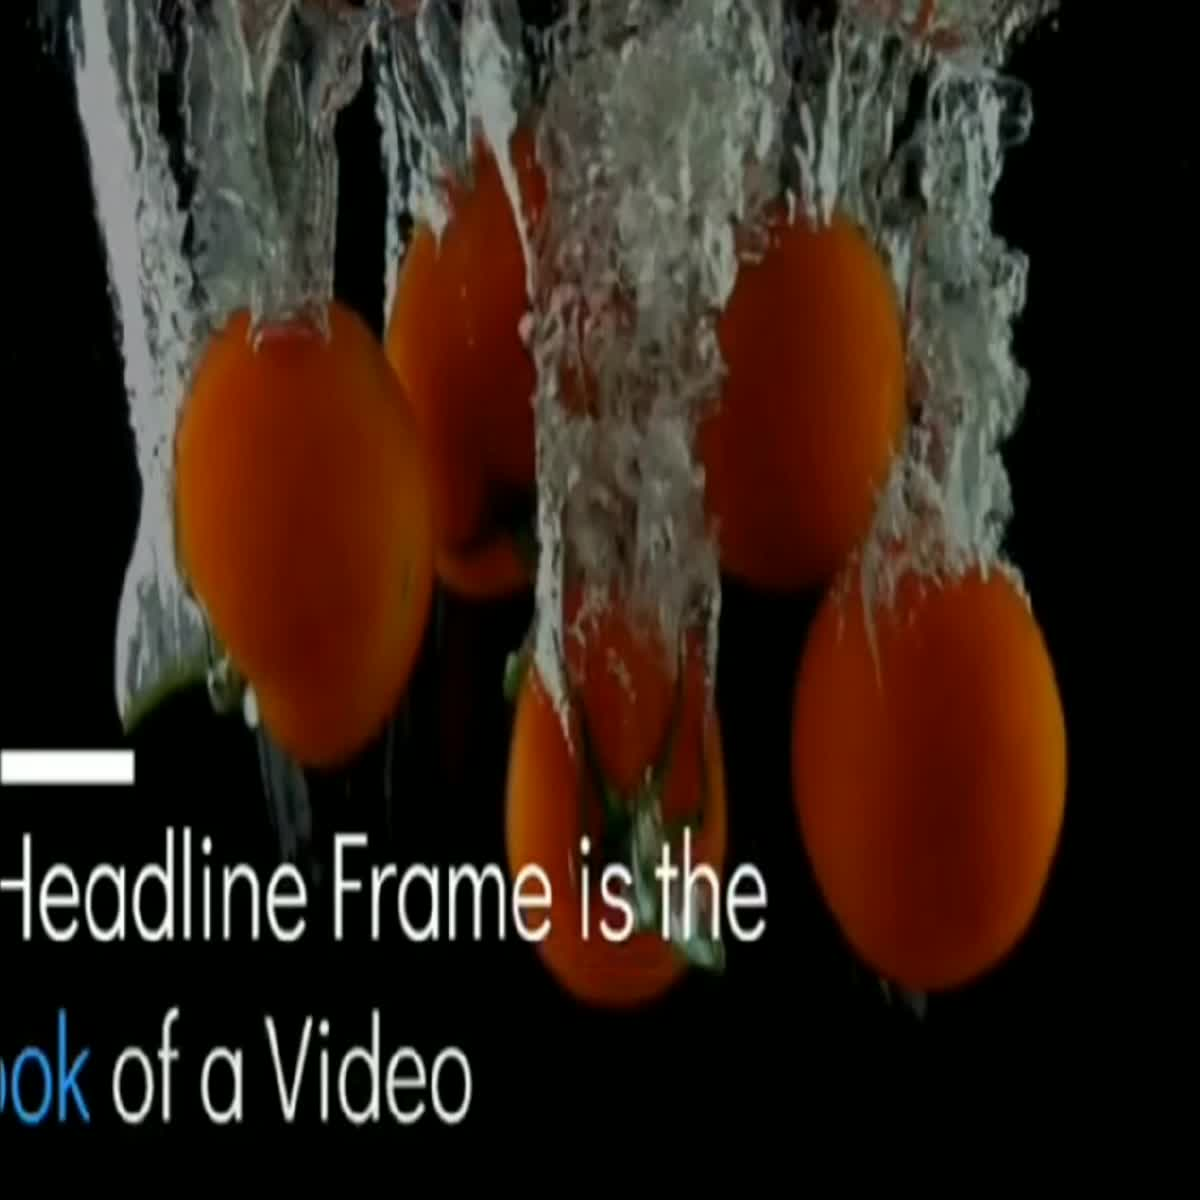 High quality HD promotional video ads for your service, brand or product